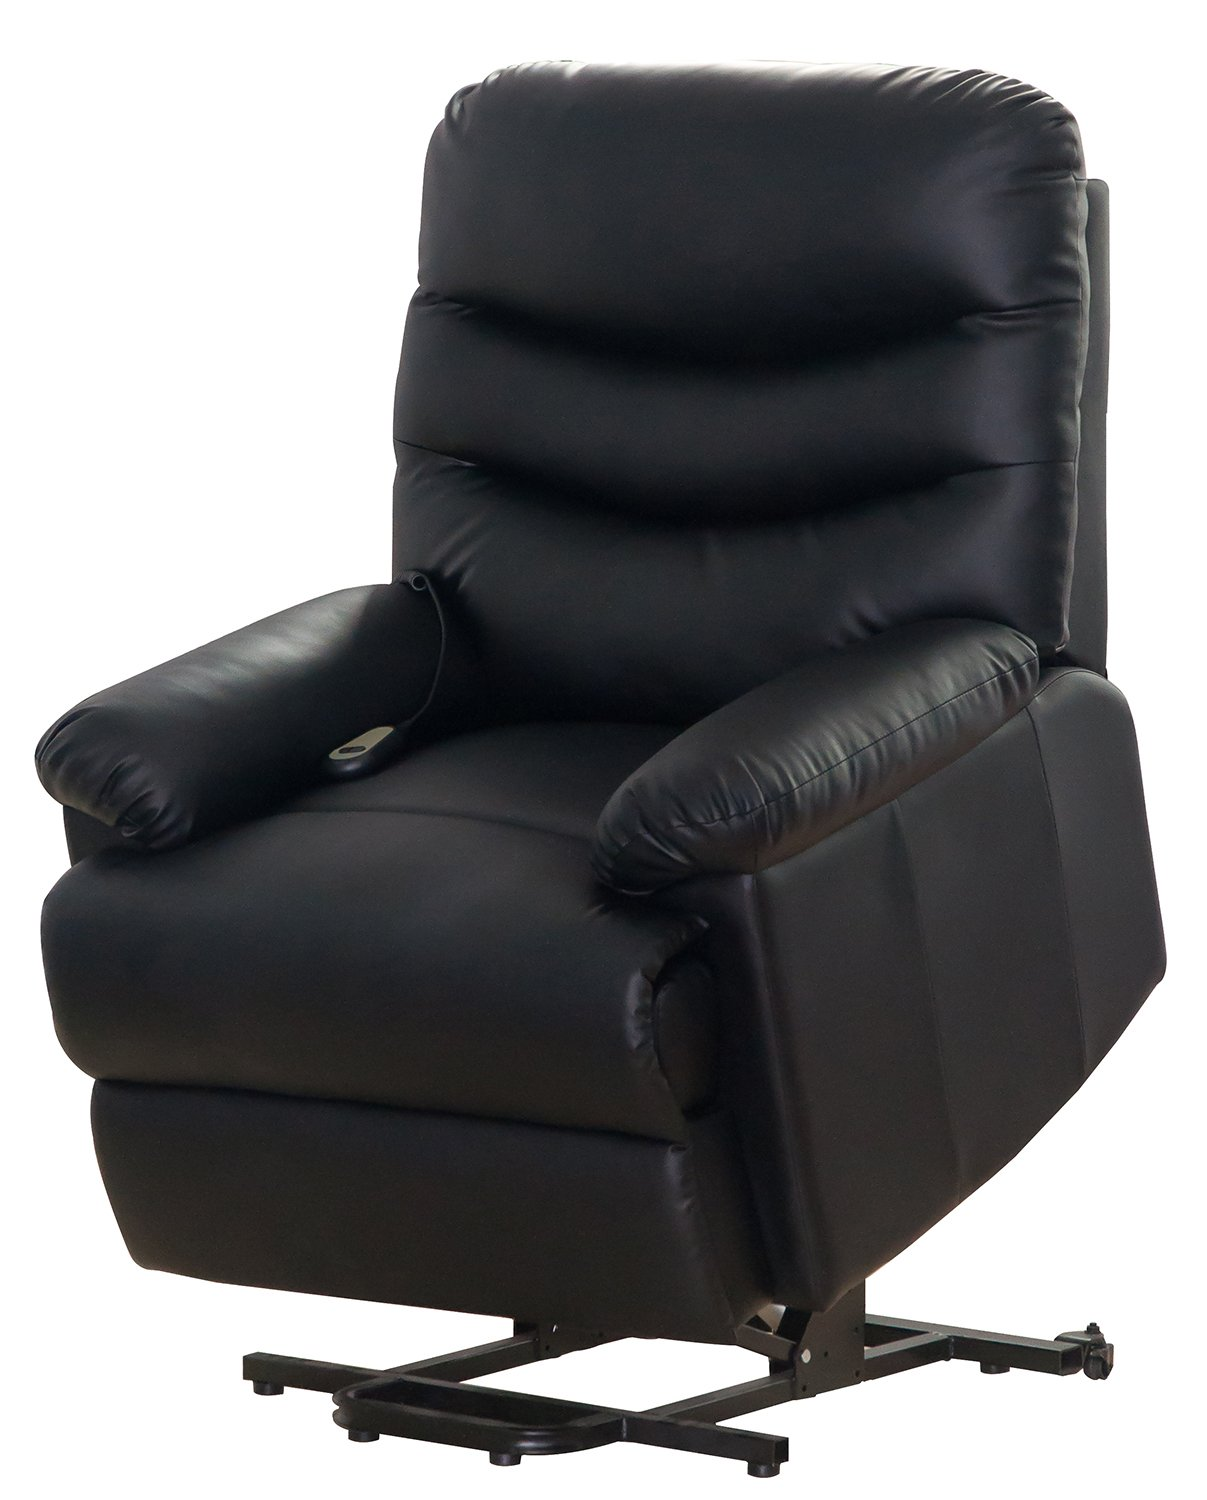 Amazon.com Merax Black PU Leather Power Recliner and Lift Chair Lifting Recliner Kitchen u0026 Dining  sc 1 st  Amazon.com & Amazon.com: Merax Black PU Leather Power Recliner and Lift Chair ... islam-shia.org